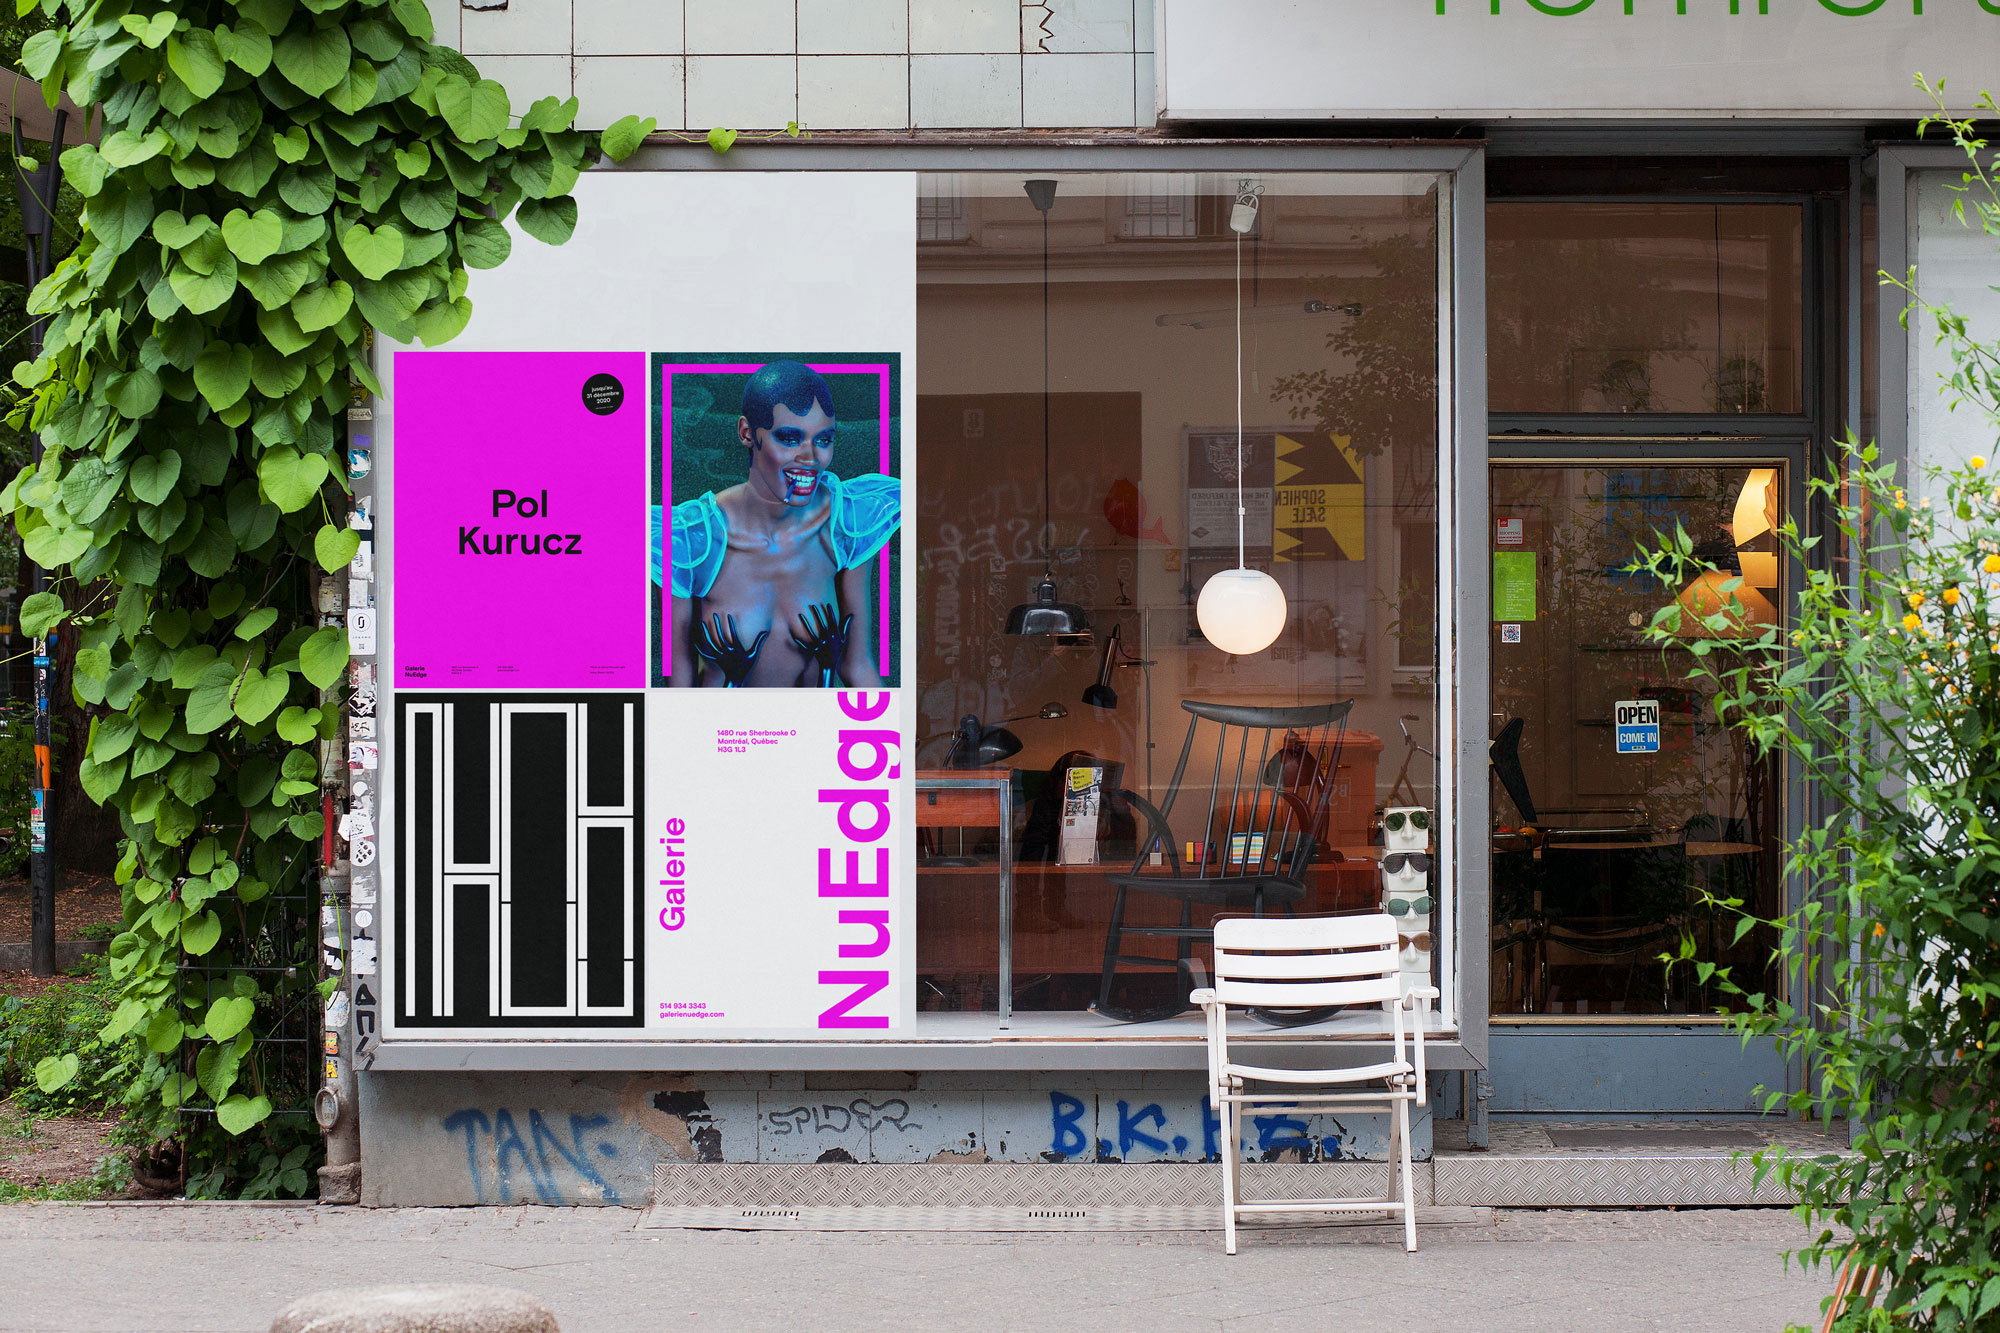 Third set of posters for Galerie NuEdge rebranding (fuchsia)